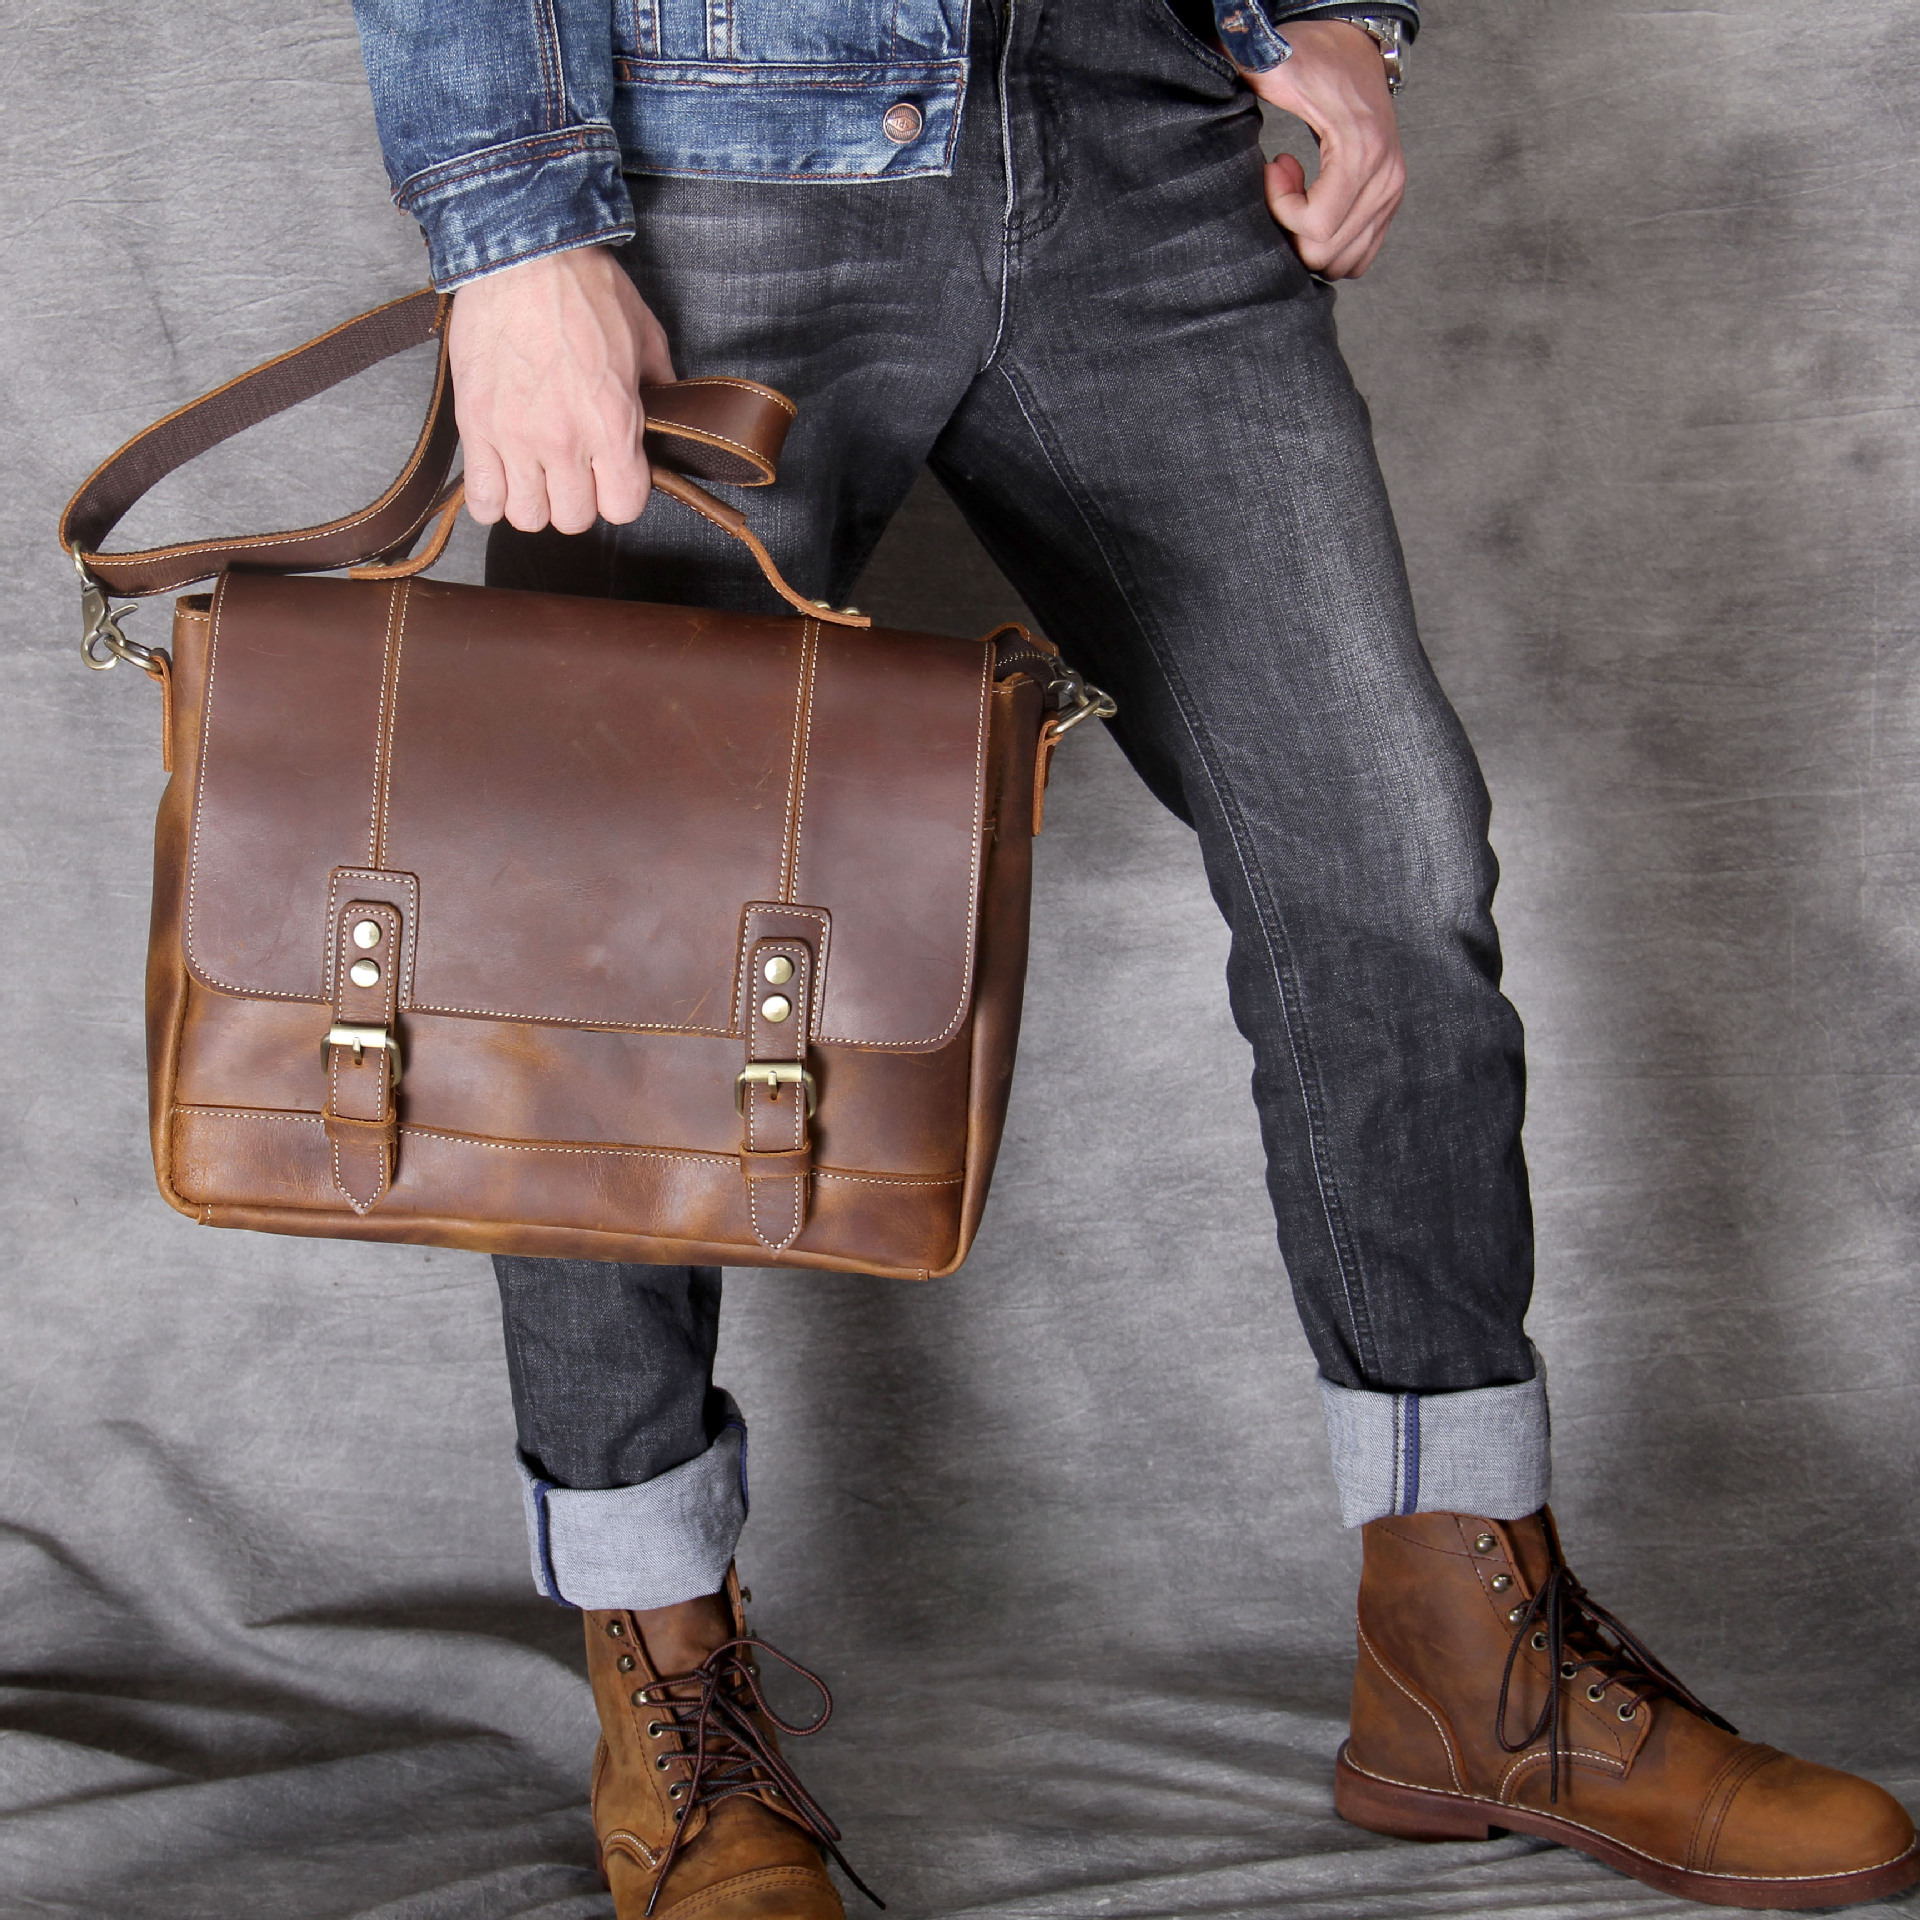 2019 New Crazy Horse Genuine Leather Men Bags Briefcases Handbag Shoulder Crossbody Bag Men Messenger Bags Leather Laptop Bag